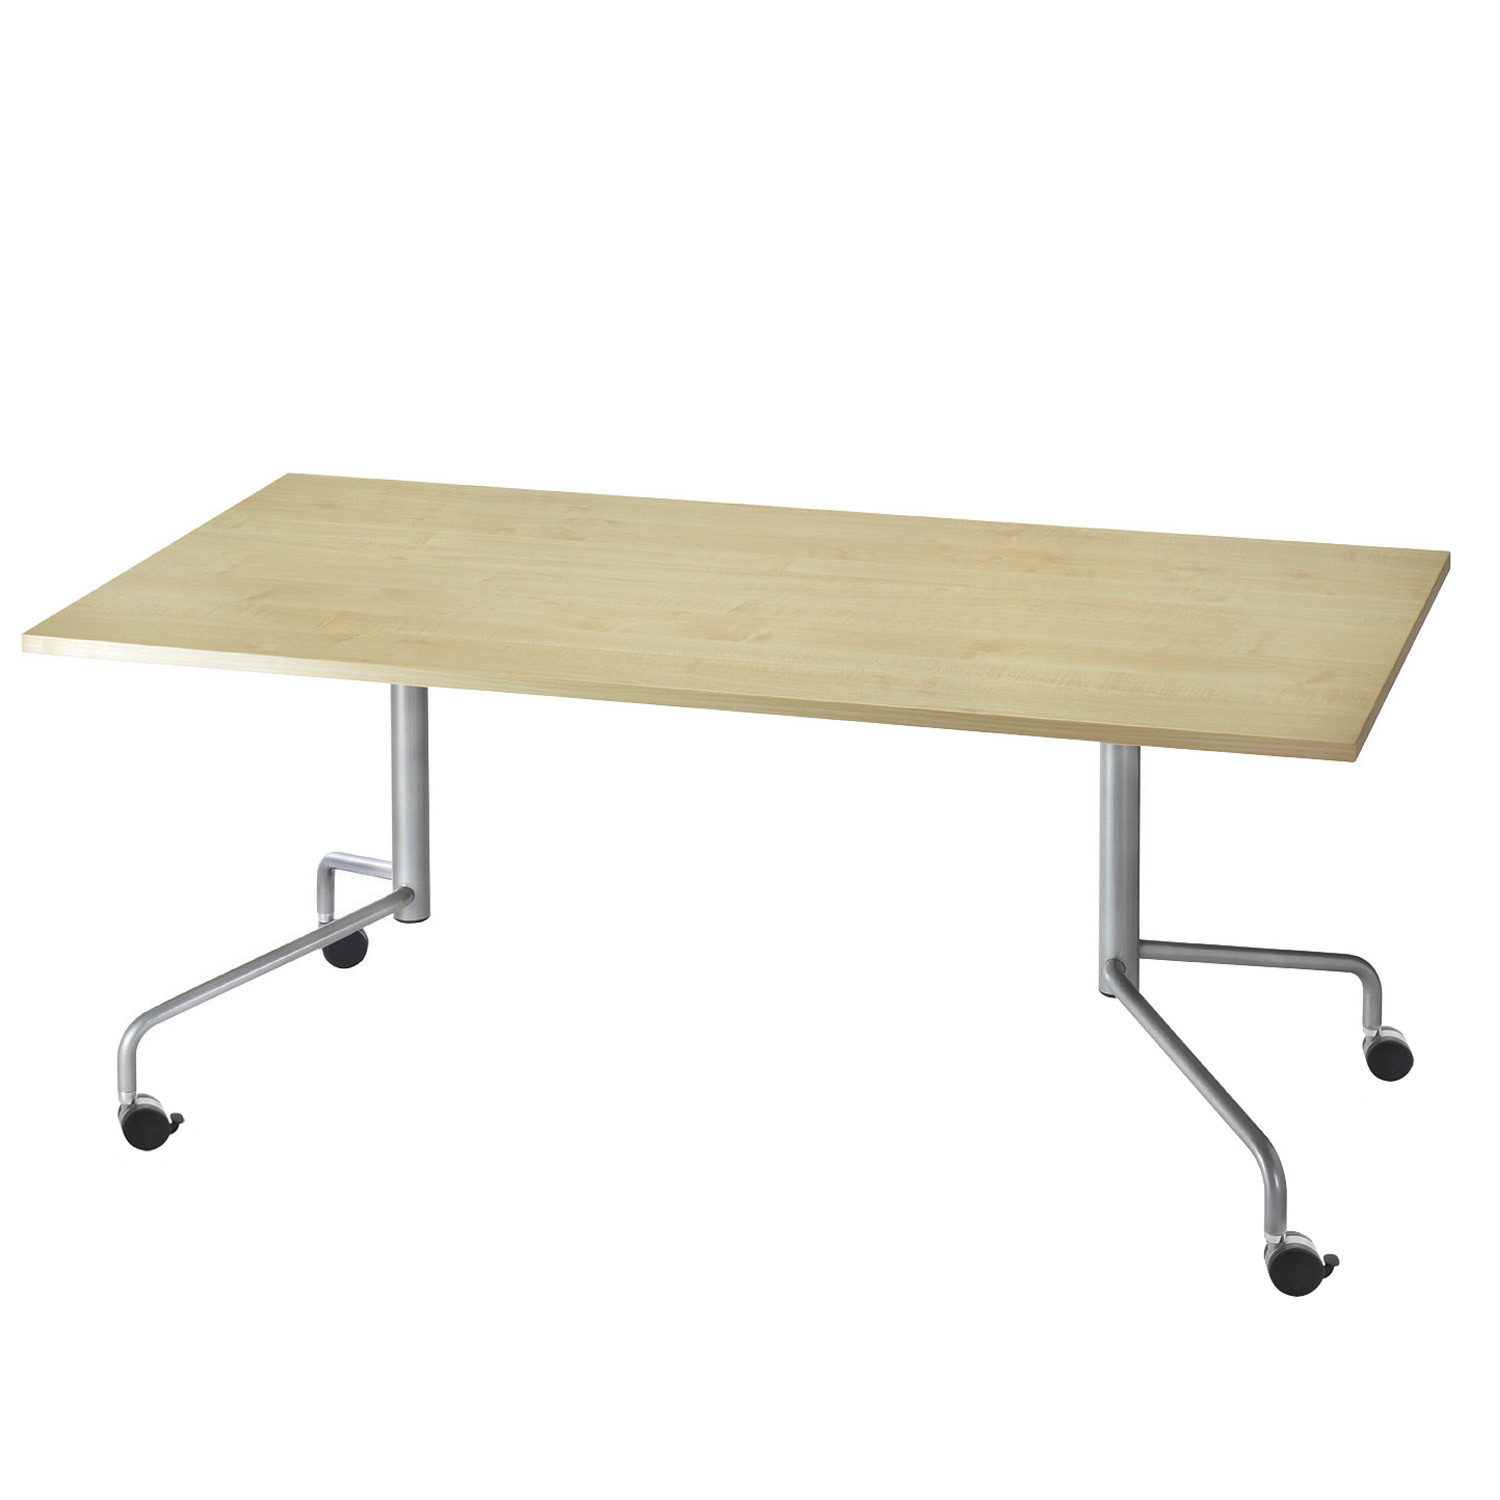 My Meeting Rectangular Folding Table